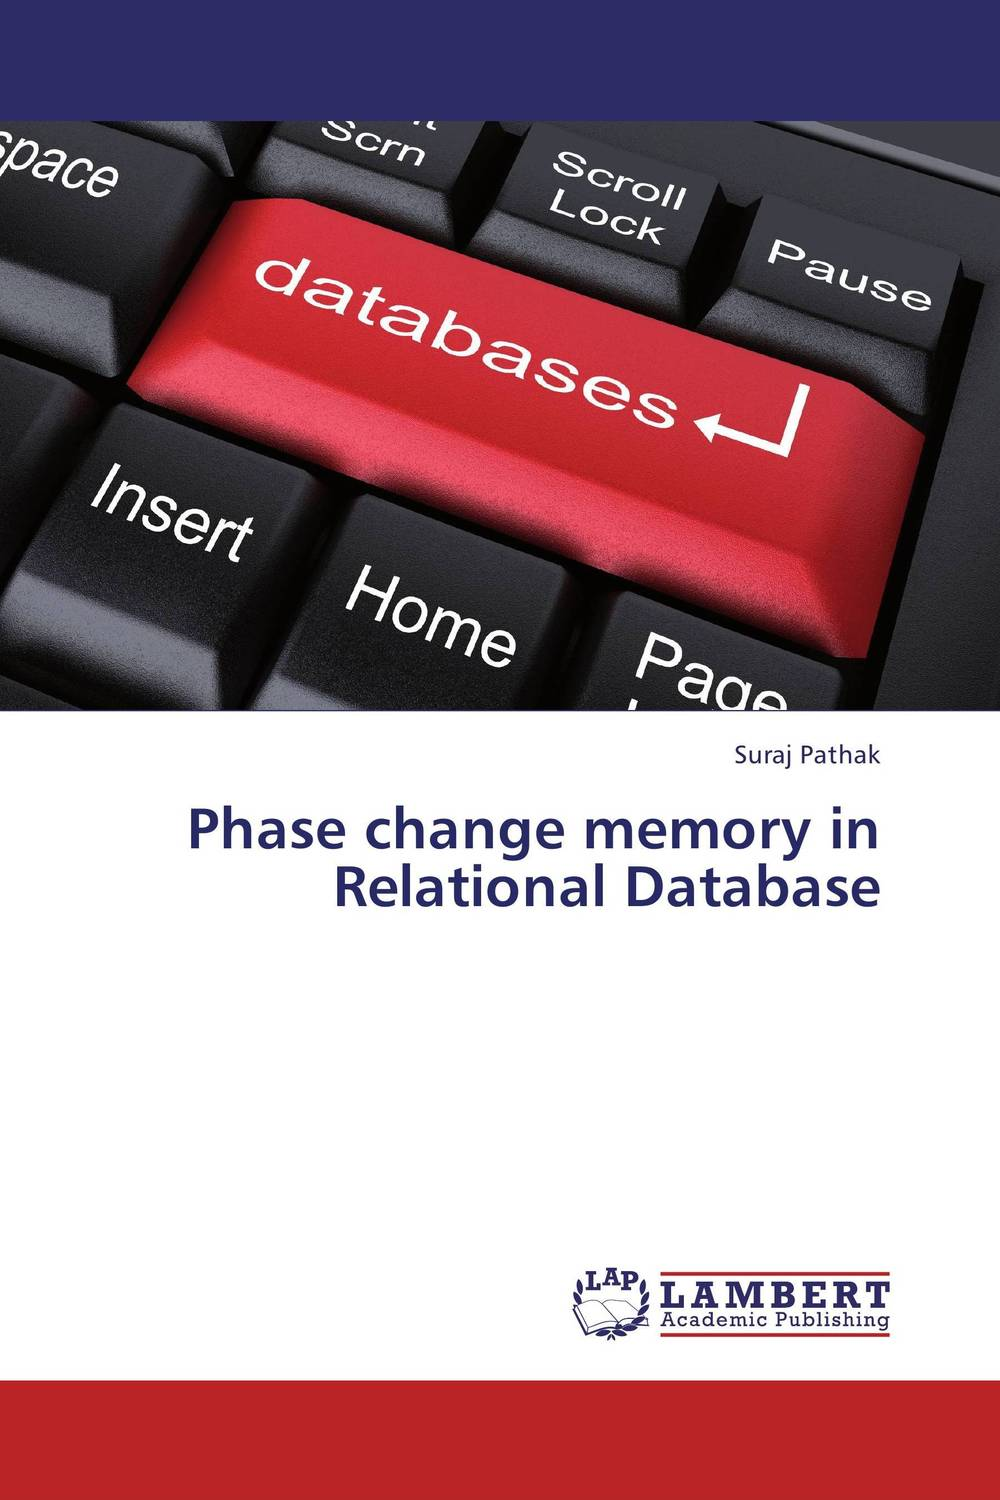 Phase change memory in Relational Database a case study of how dupont reduced its environment footprint